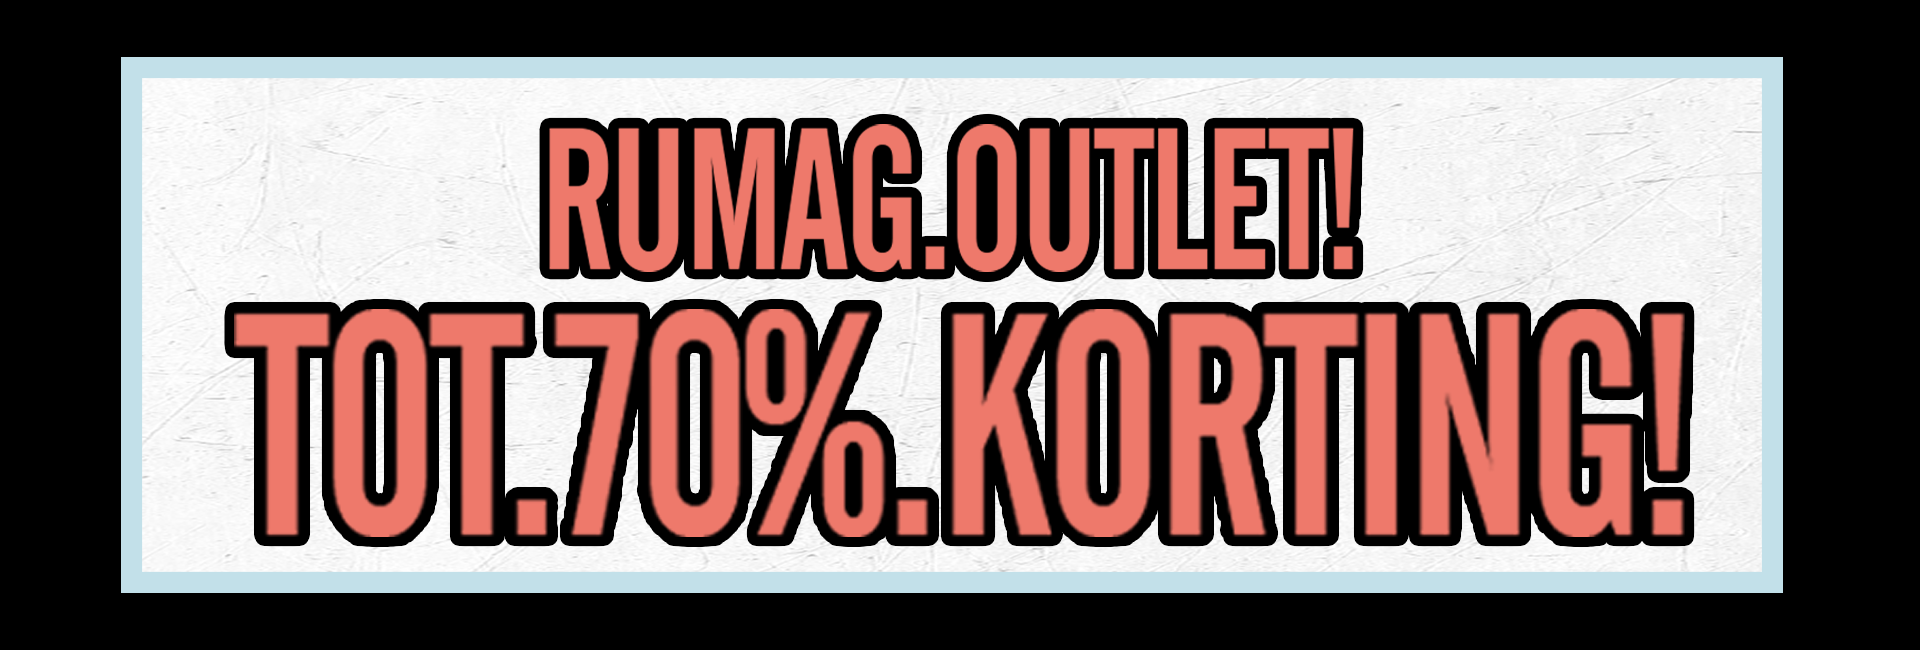 RUMAG outlet tot 70 korting desktop